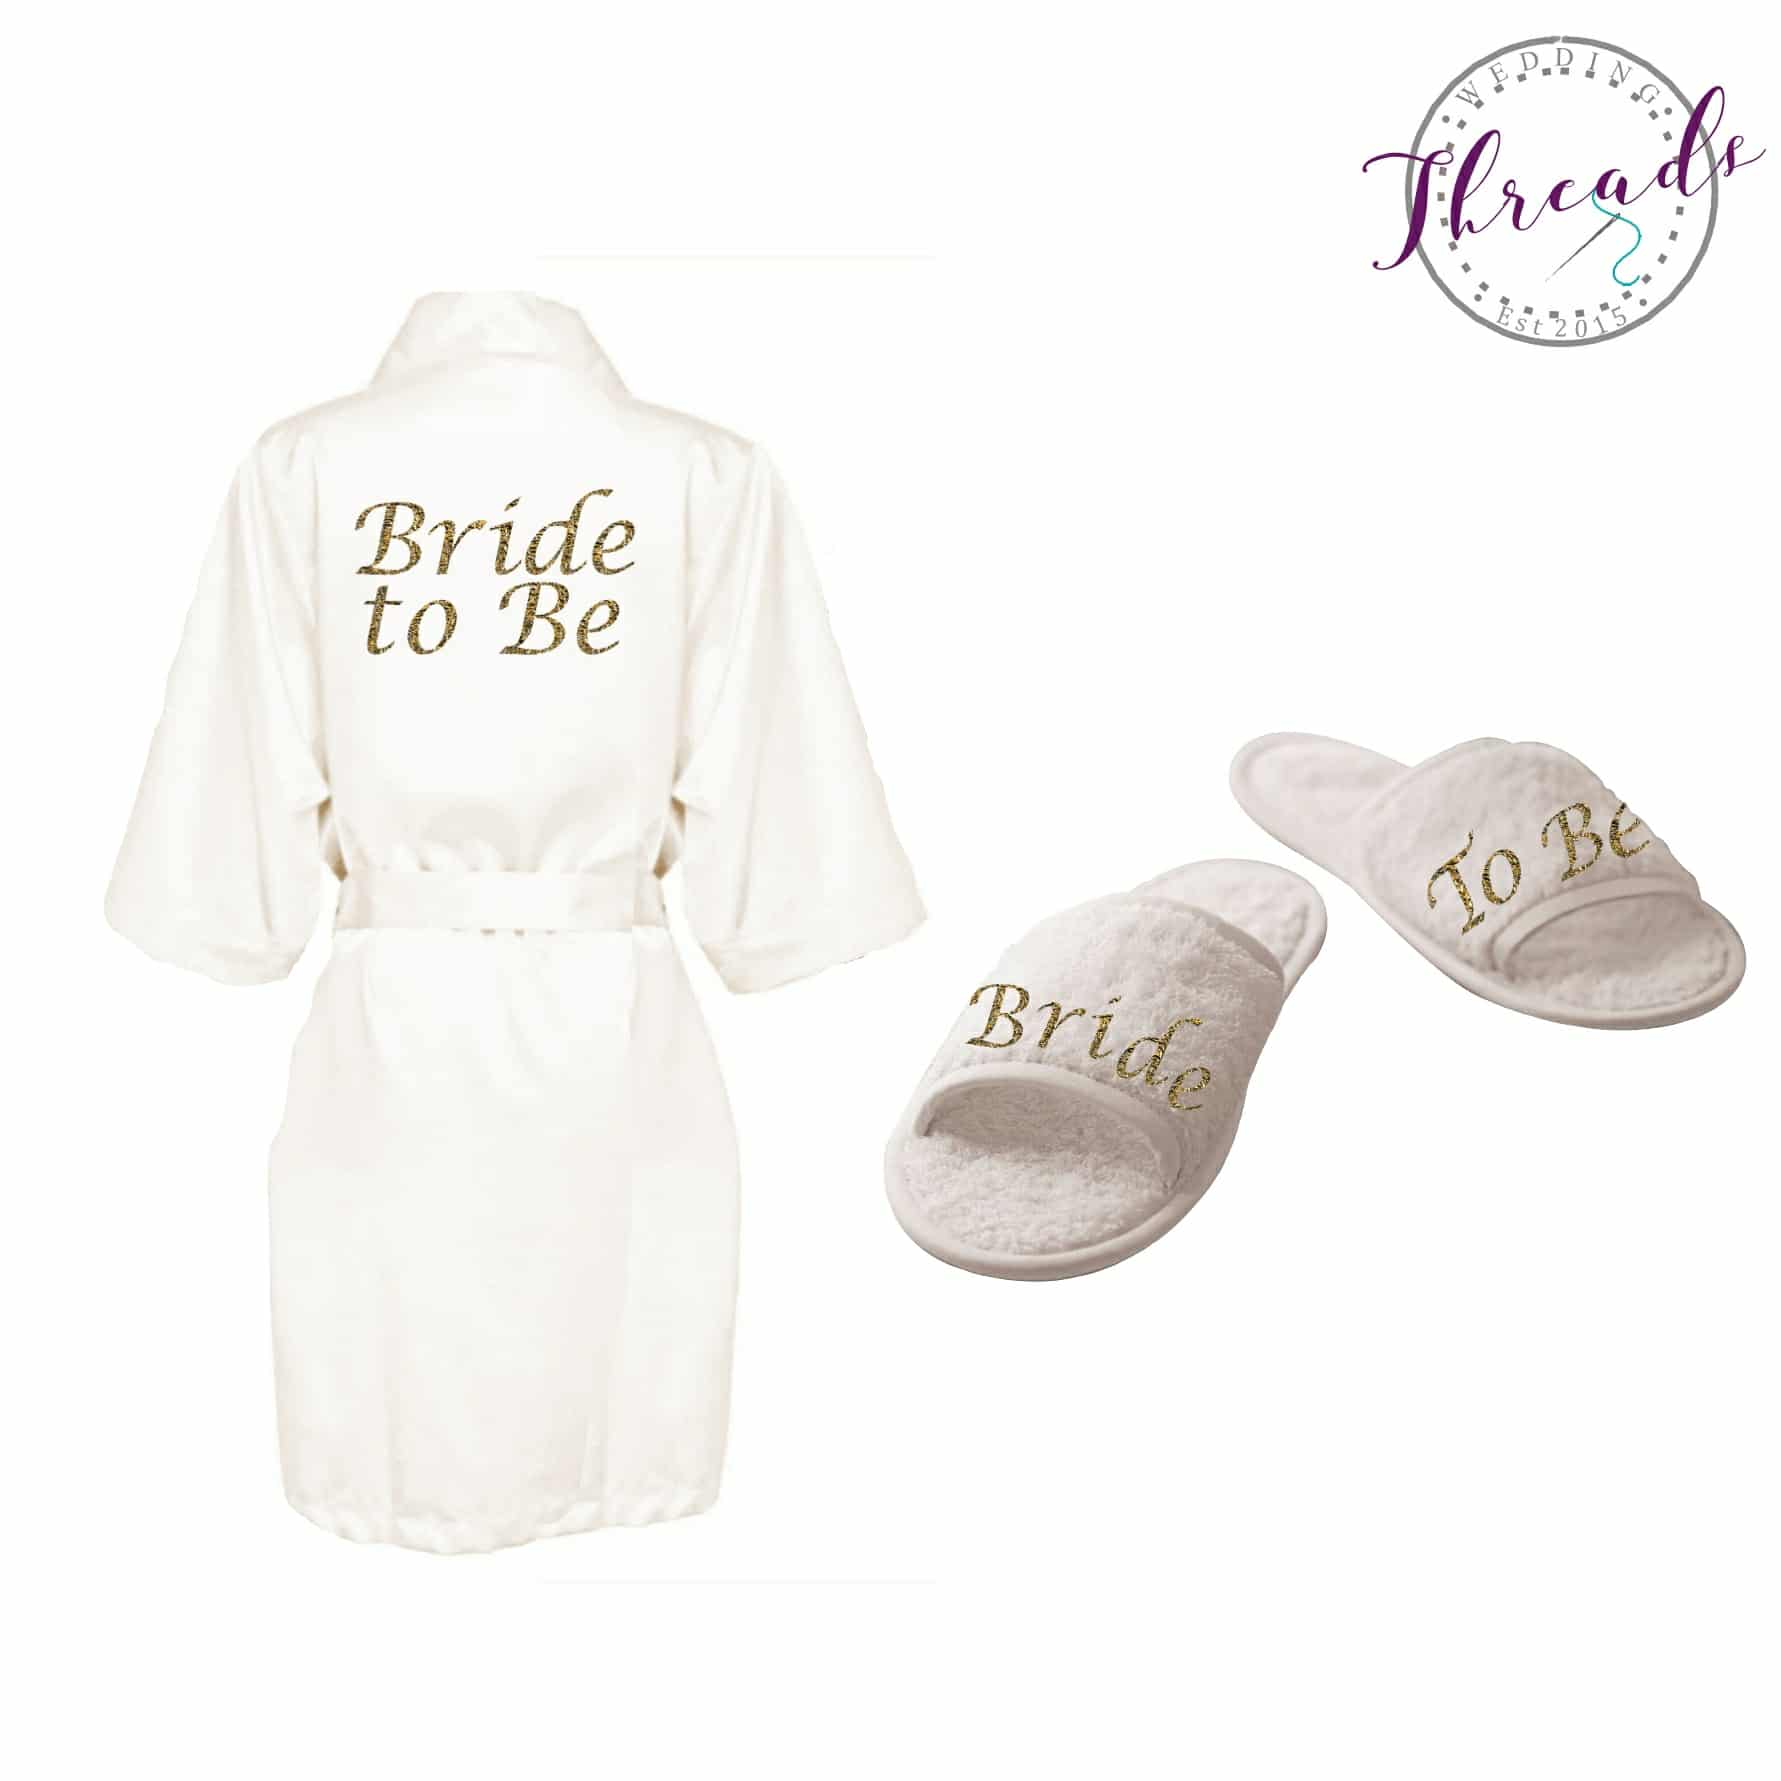 9ac1836f683 Bride to Be satin robe & slipper set